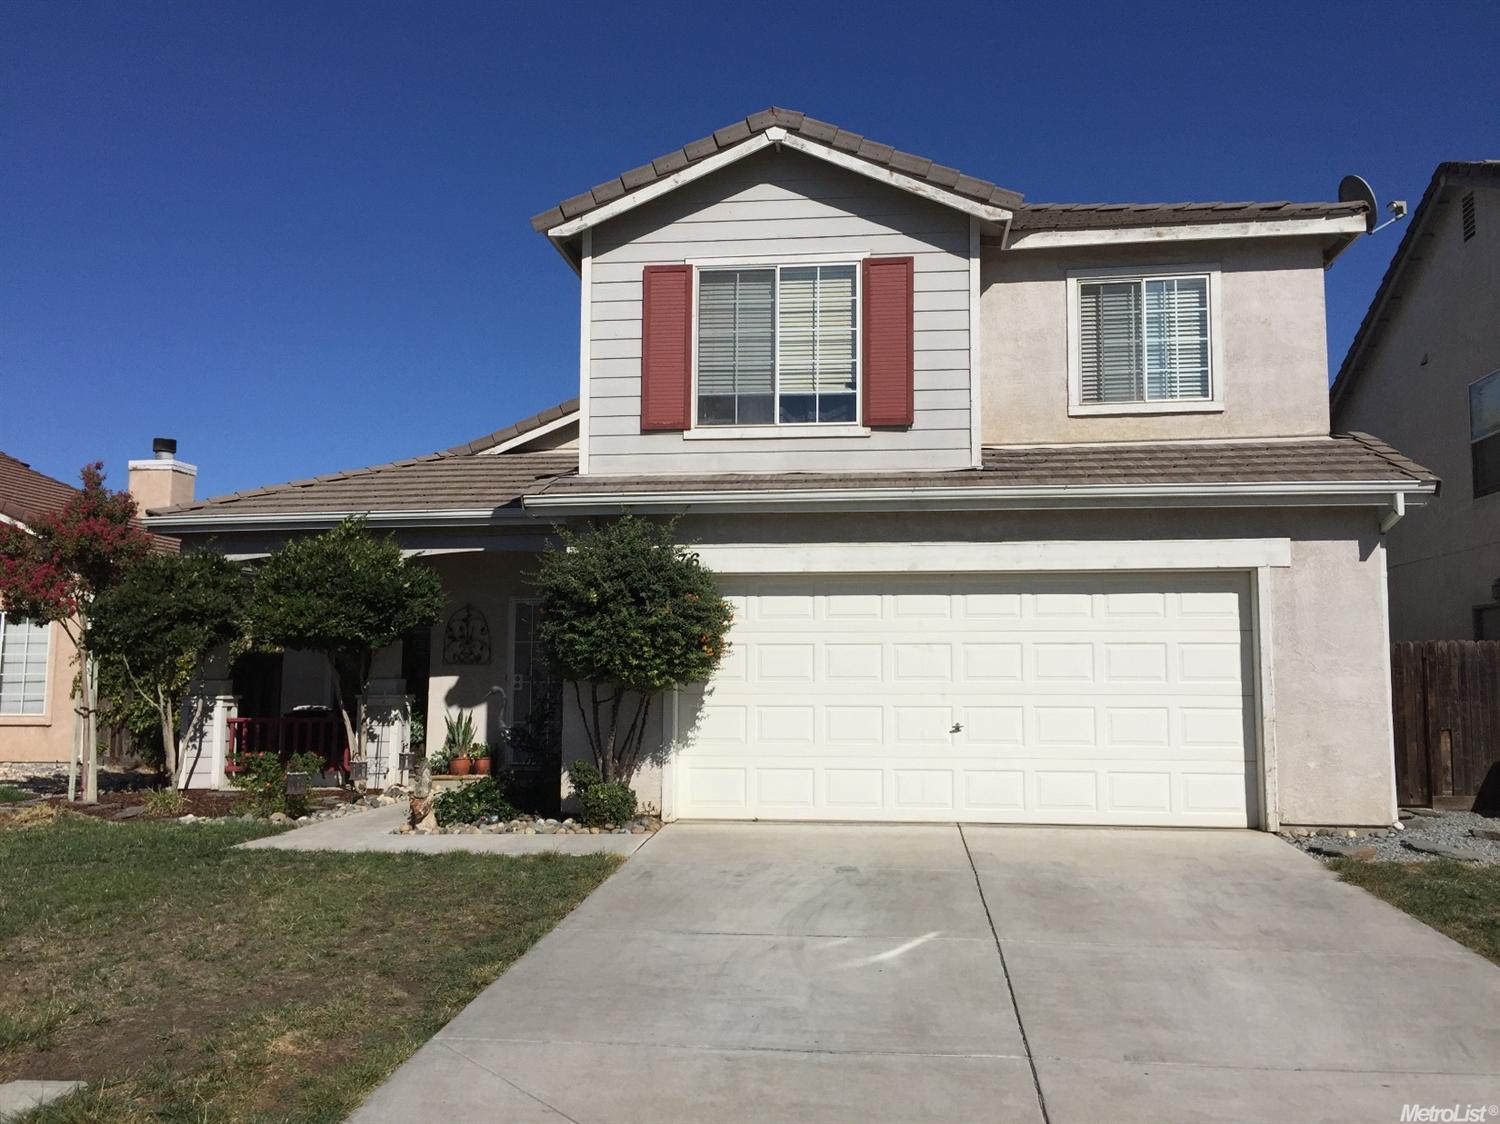 776 Robert L Smith Dr, Tracy, CA